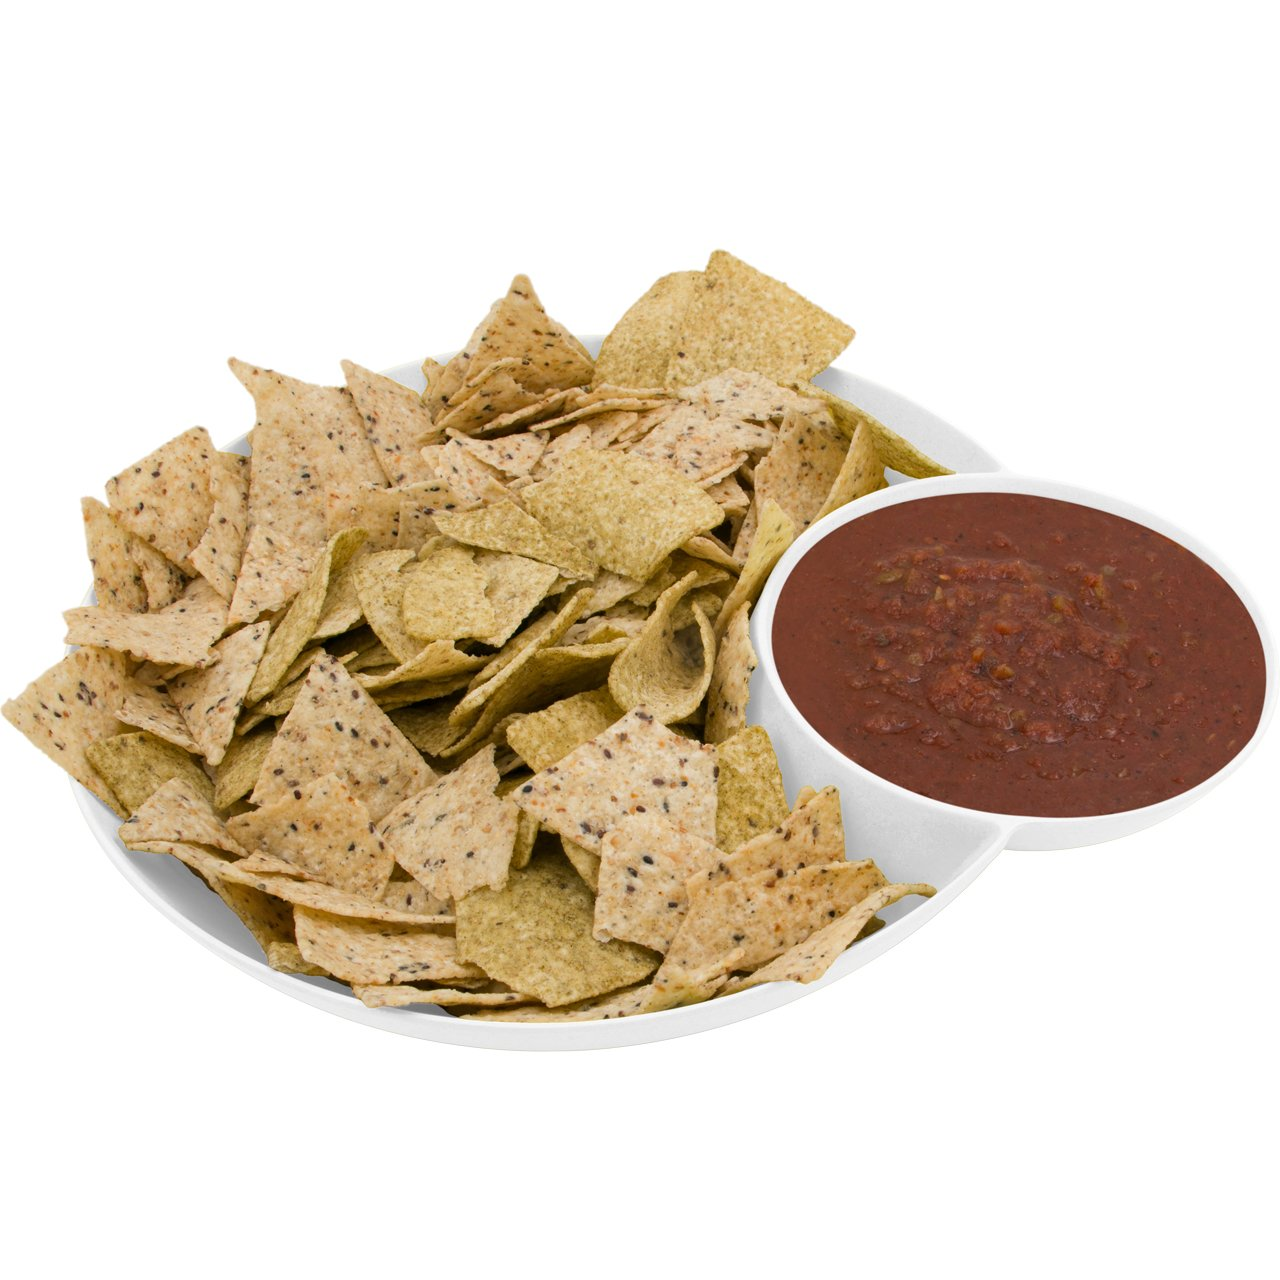 Chips and salsa serving bamboo - Avoseedo Bowl for Chips and Dip, 2 in 1 Snack Bowl in White Bamboo Fibre